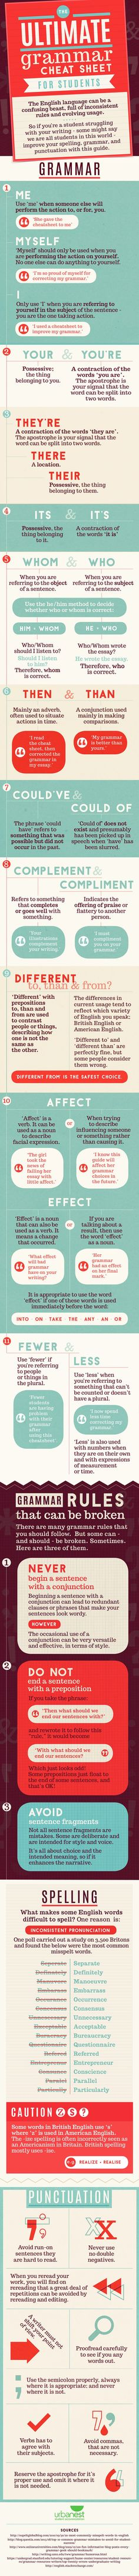 This is one of the most useful English grammar infographics we've seen so far. Instead of just showing bad vs. good usage,…